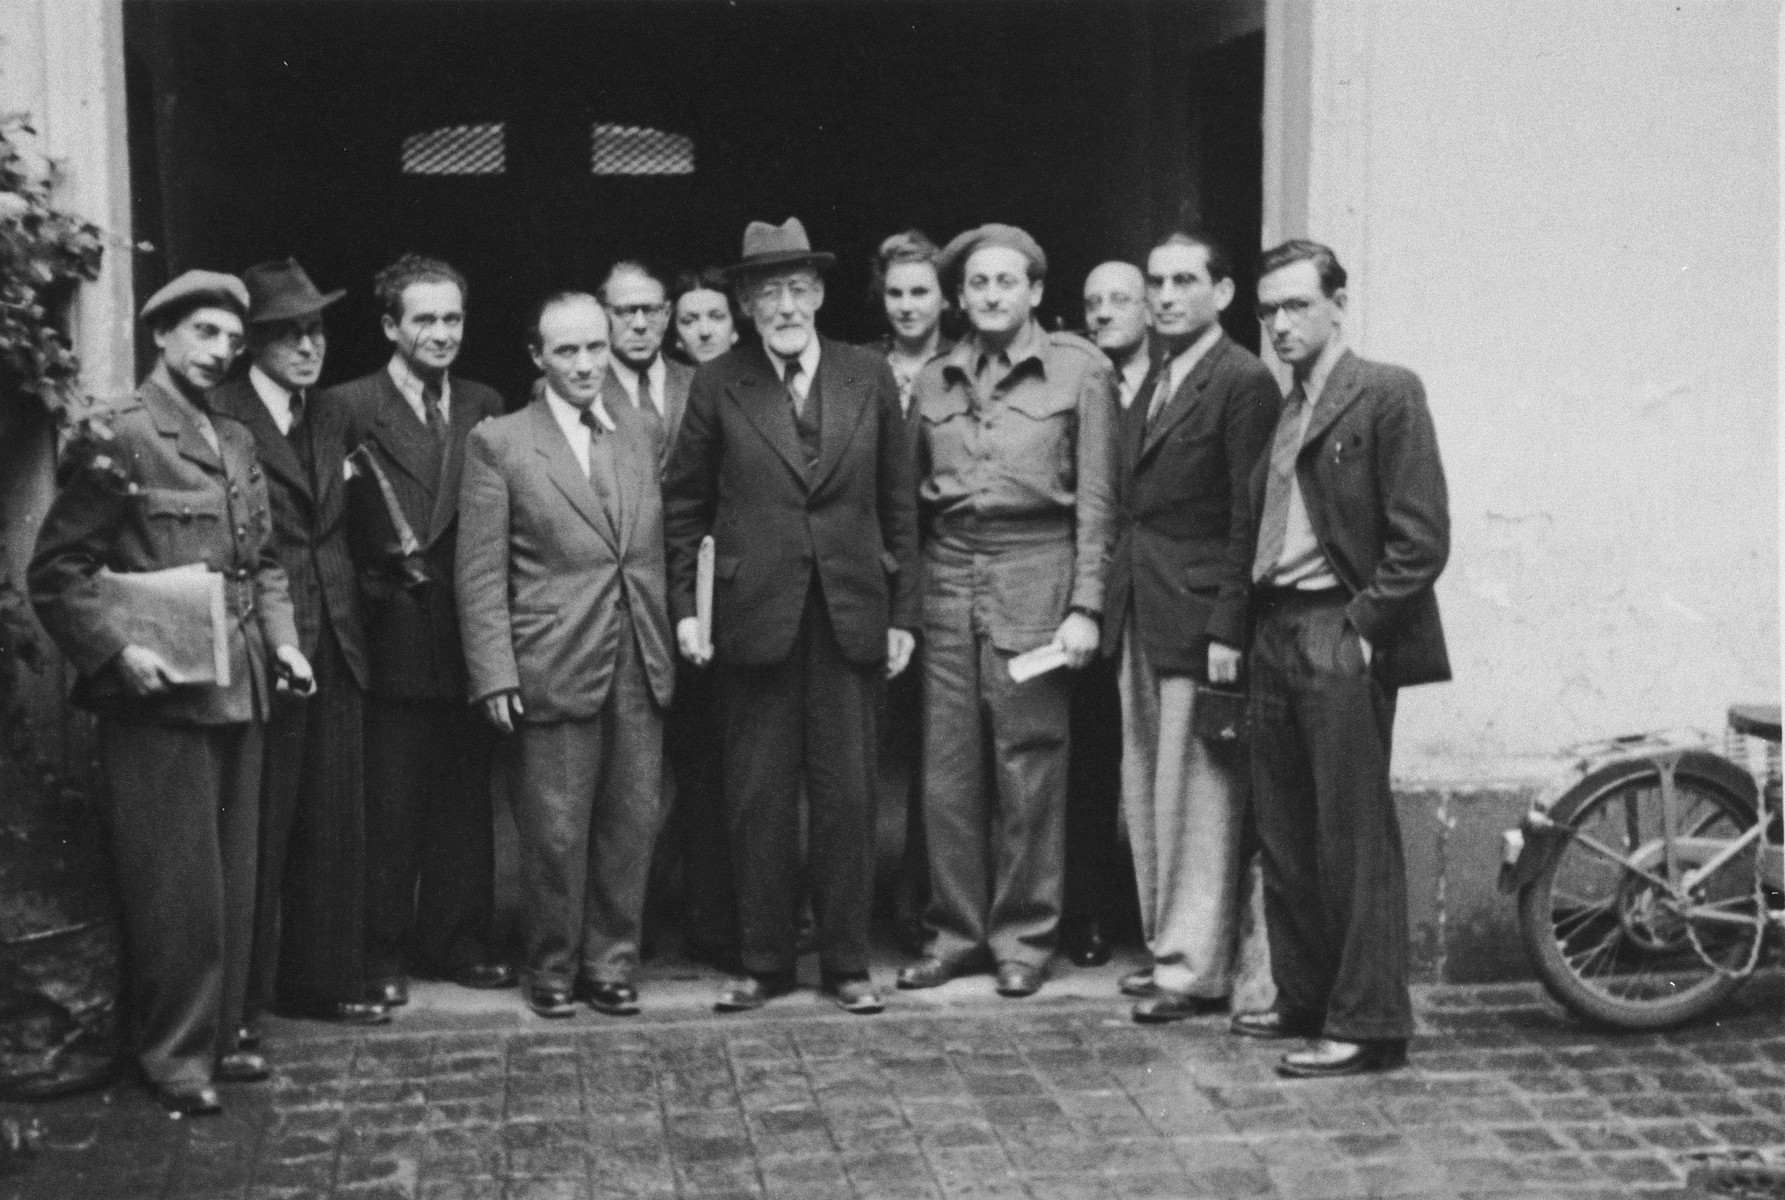 Rabbi Leo Baeck poses with a group of Jewish leaders during his three week visit to Germany in the fall of 1948.